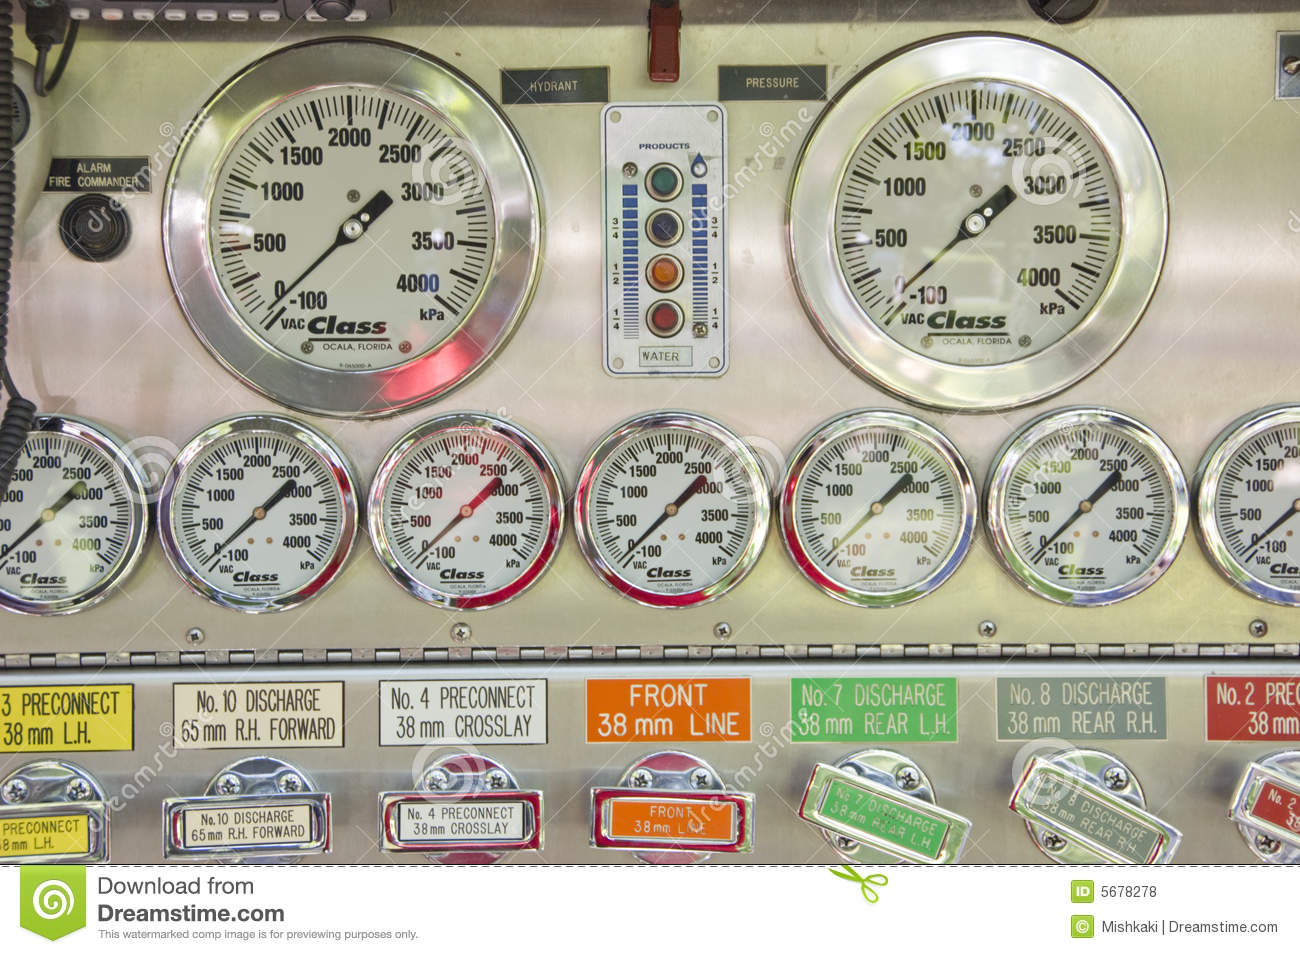 Royalty Free Stock Photos Fire Truck Pump Control Image5678278